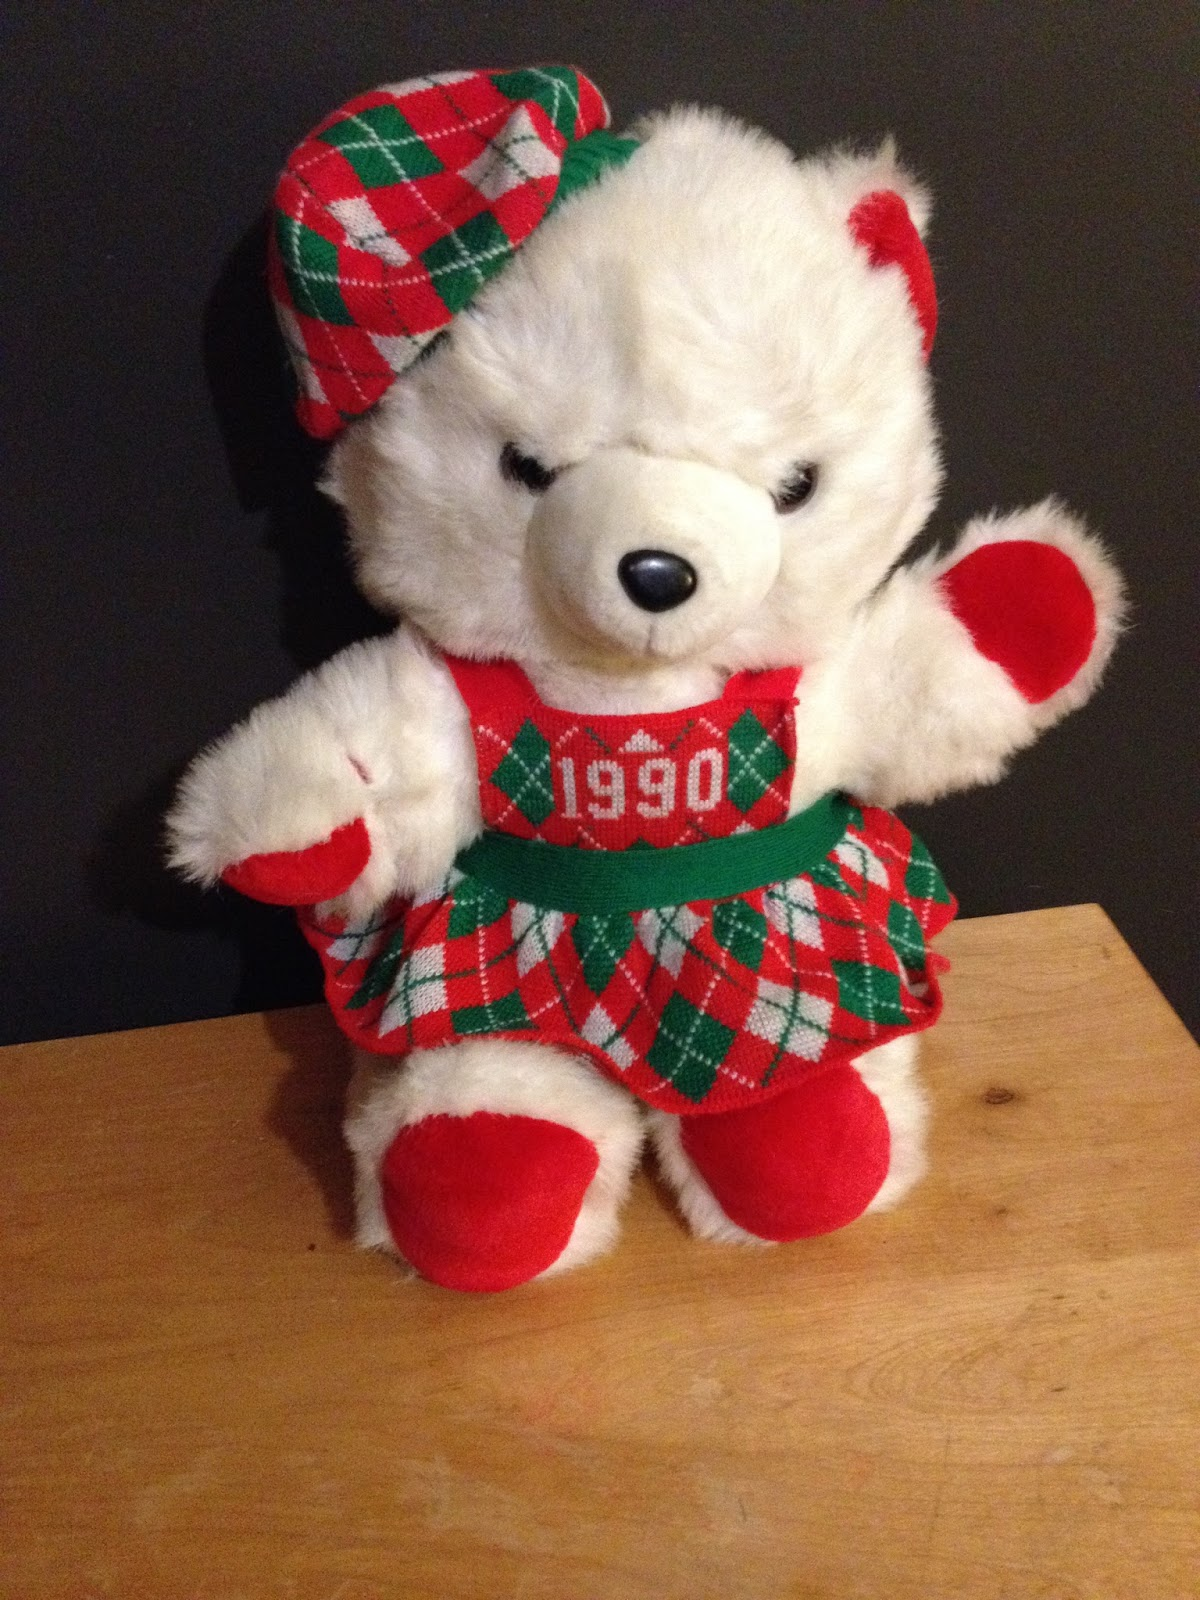 The Teddy Bear Shelter: KMART HOLIDAY CHRISTMAS BEARS! PAST YEARS